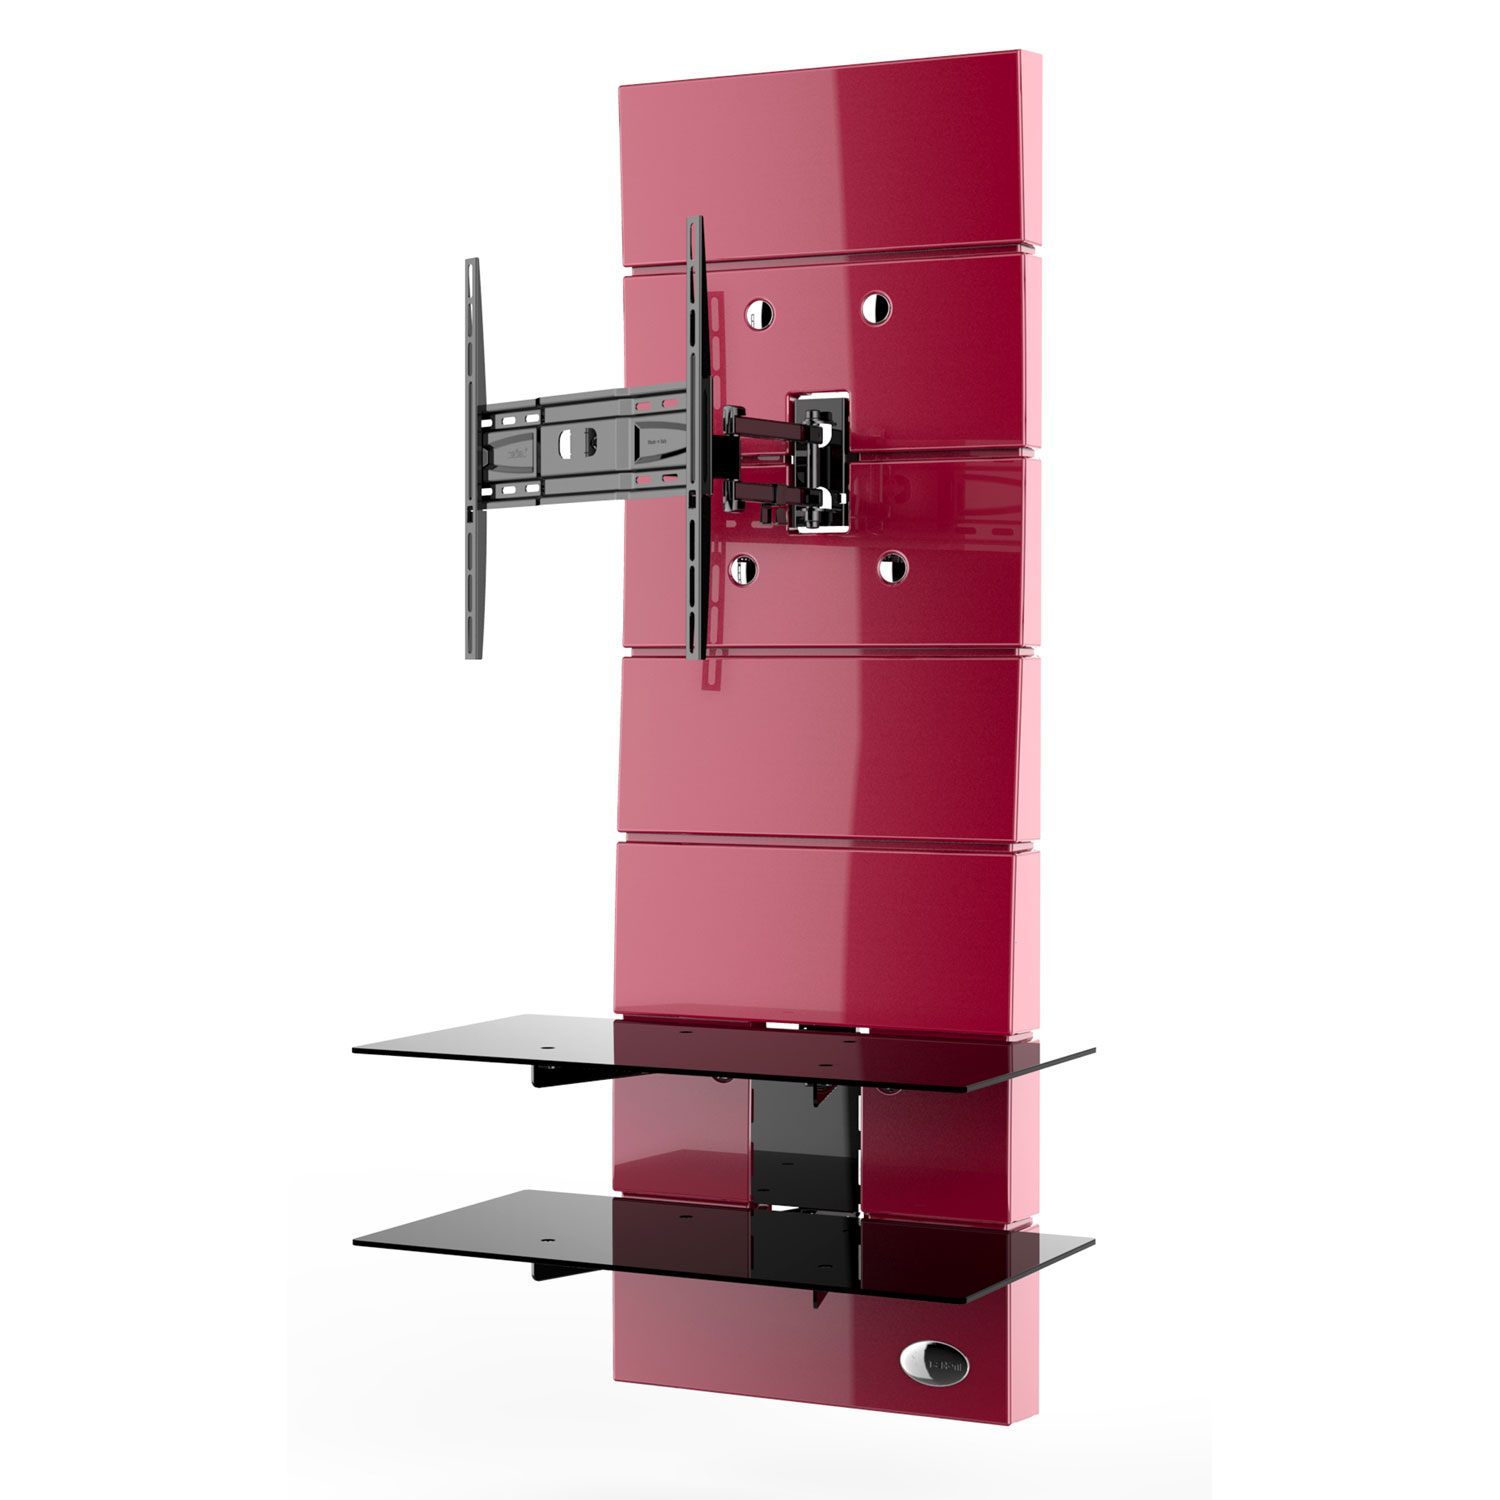 meliconi ghost design 3000 rotation rouge meuble tv. Black Bedroom Furniture Sets. Home Design Ideas